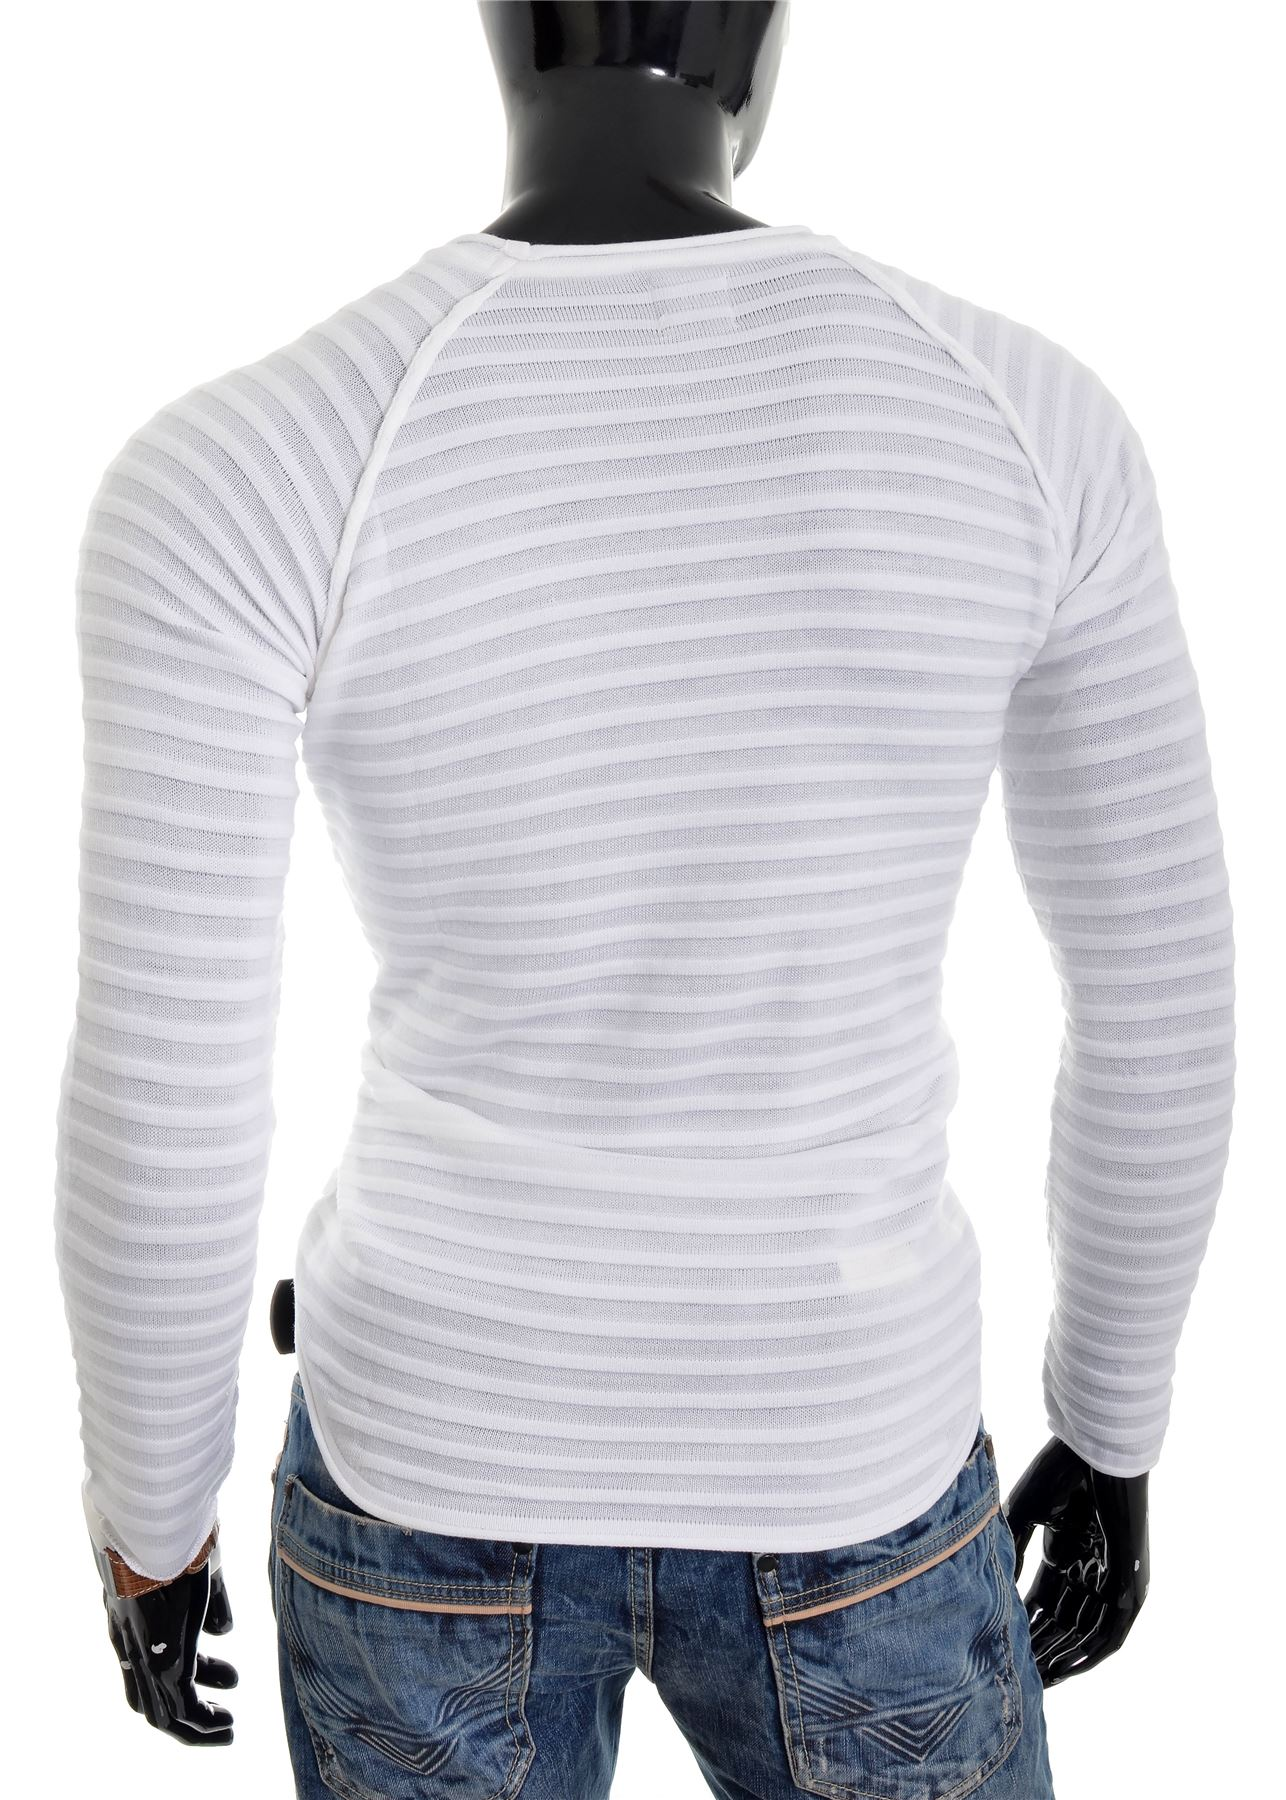 D/&R Mens ribbed pullover black white fitness jumper cotton crew neck knitted